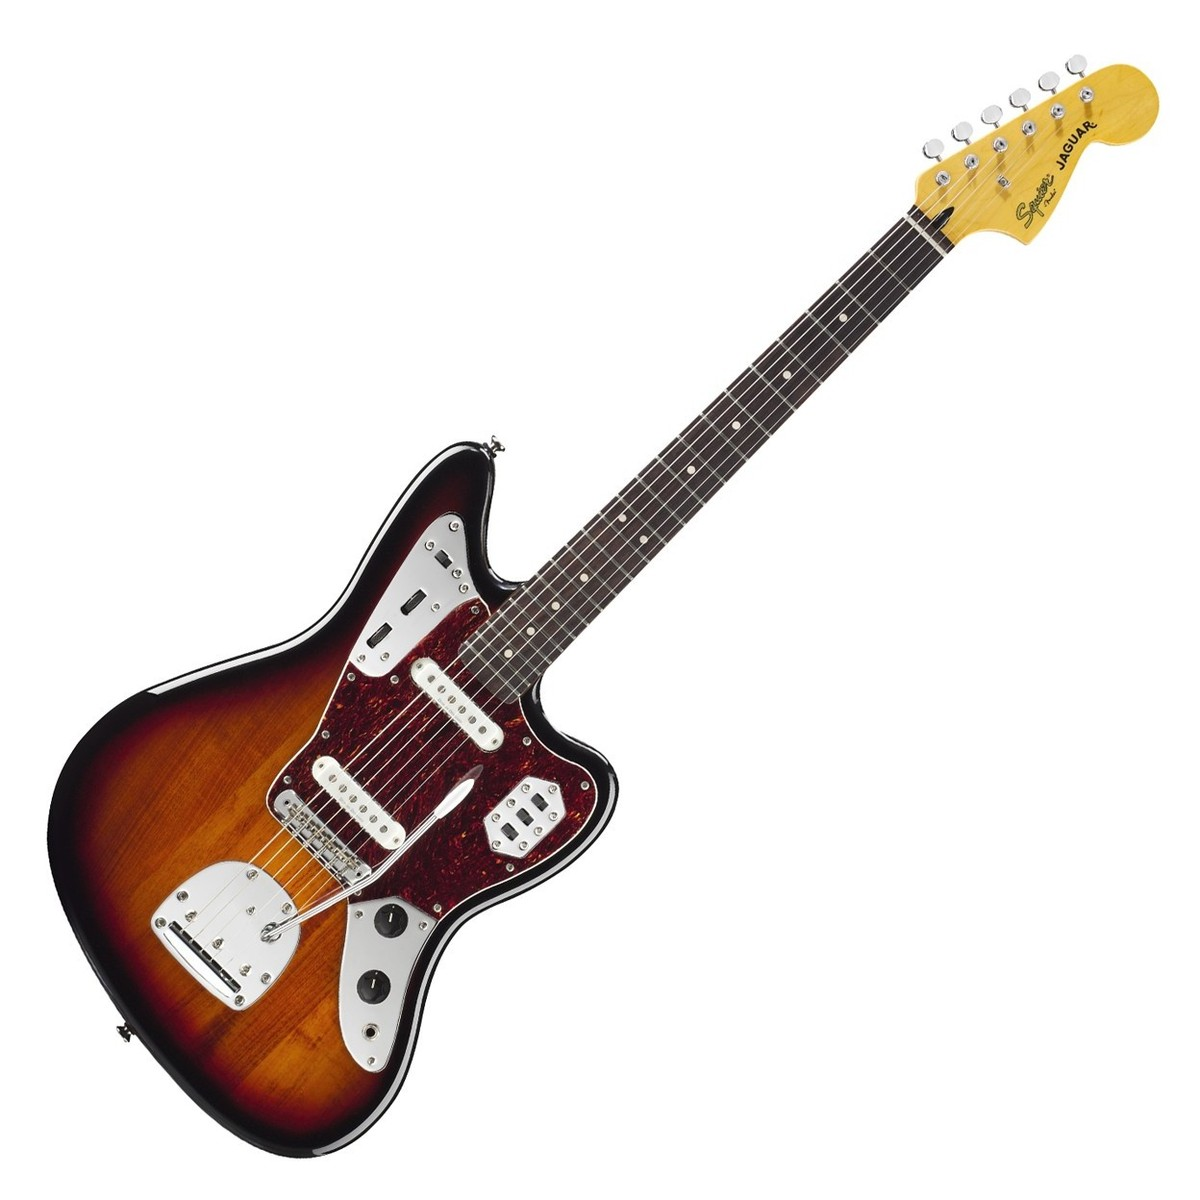 Fender Squier Jaguar : squier by fender vintage modified jaguar guitar sunburst at ~ Hamham.info Haus und Dekorationen